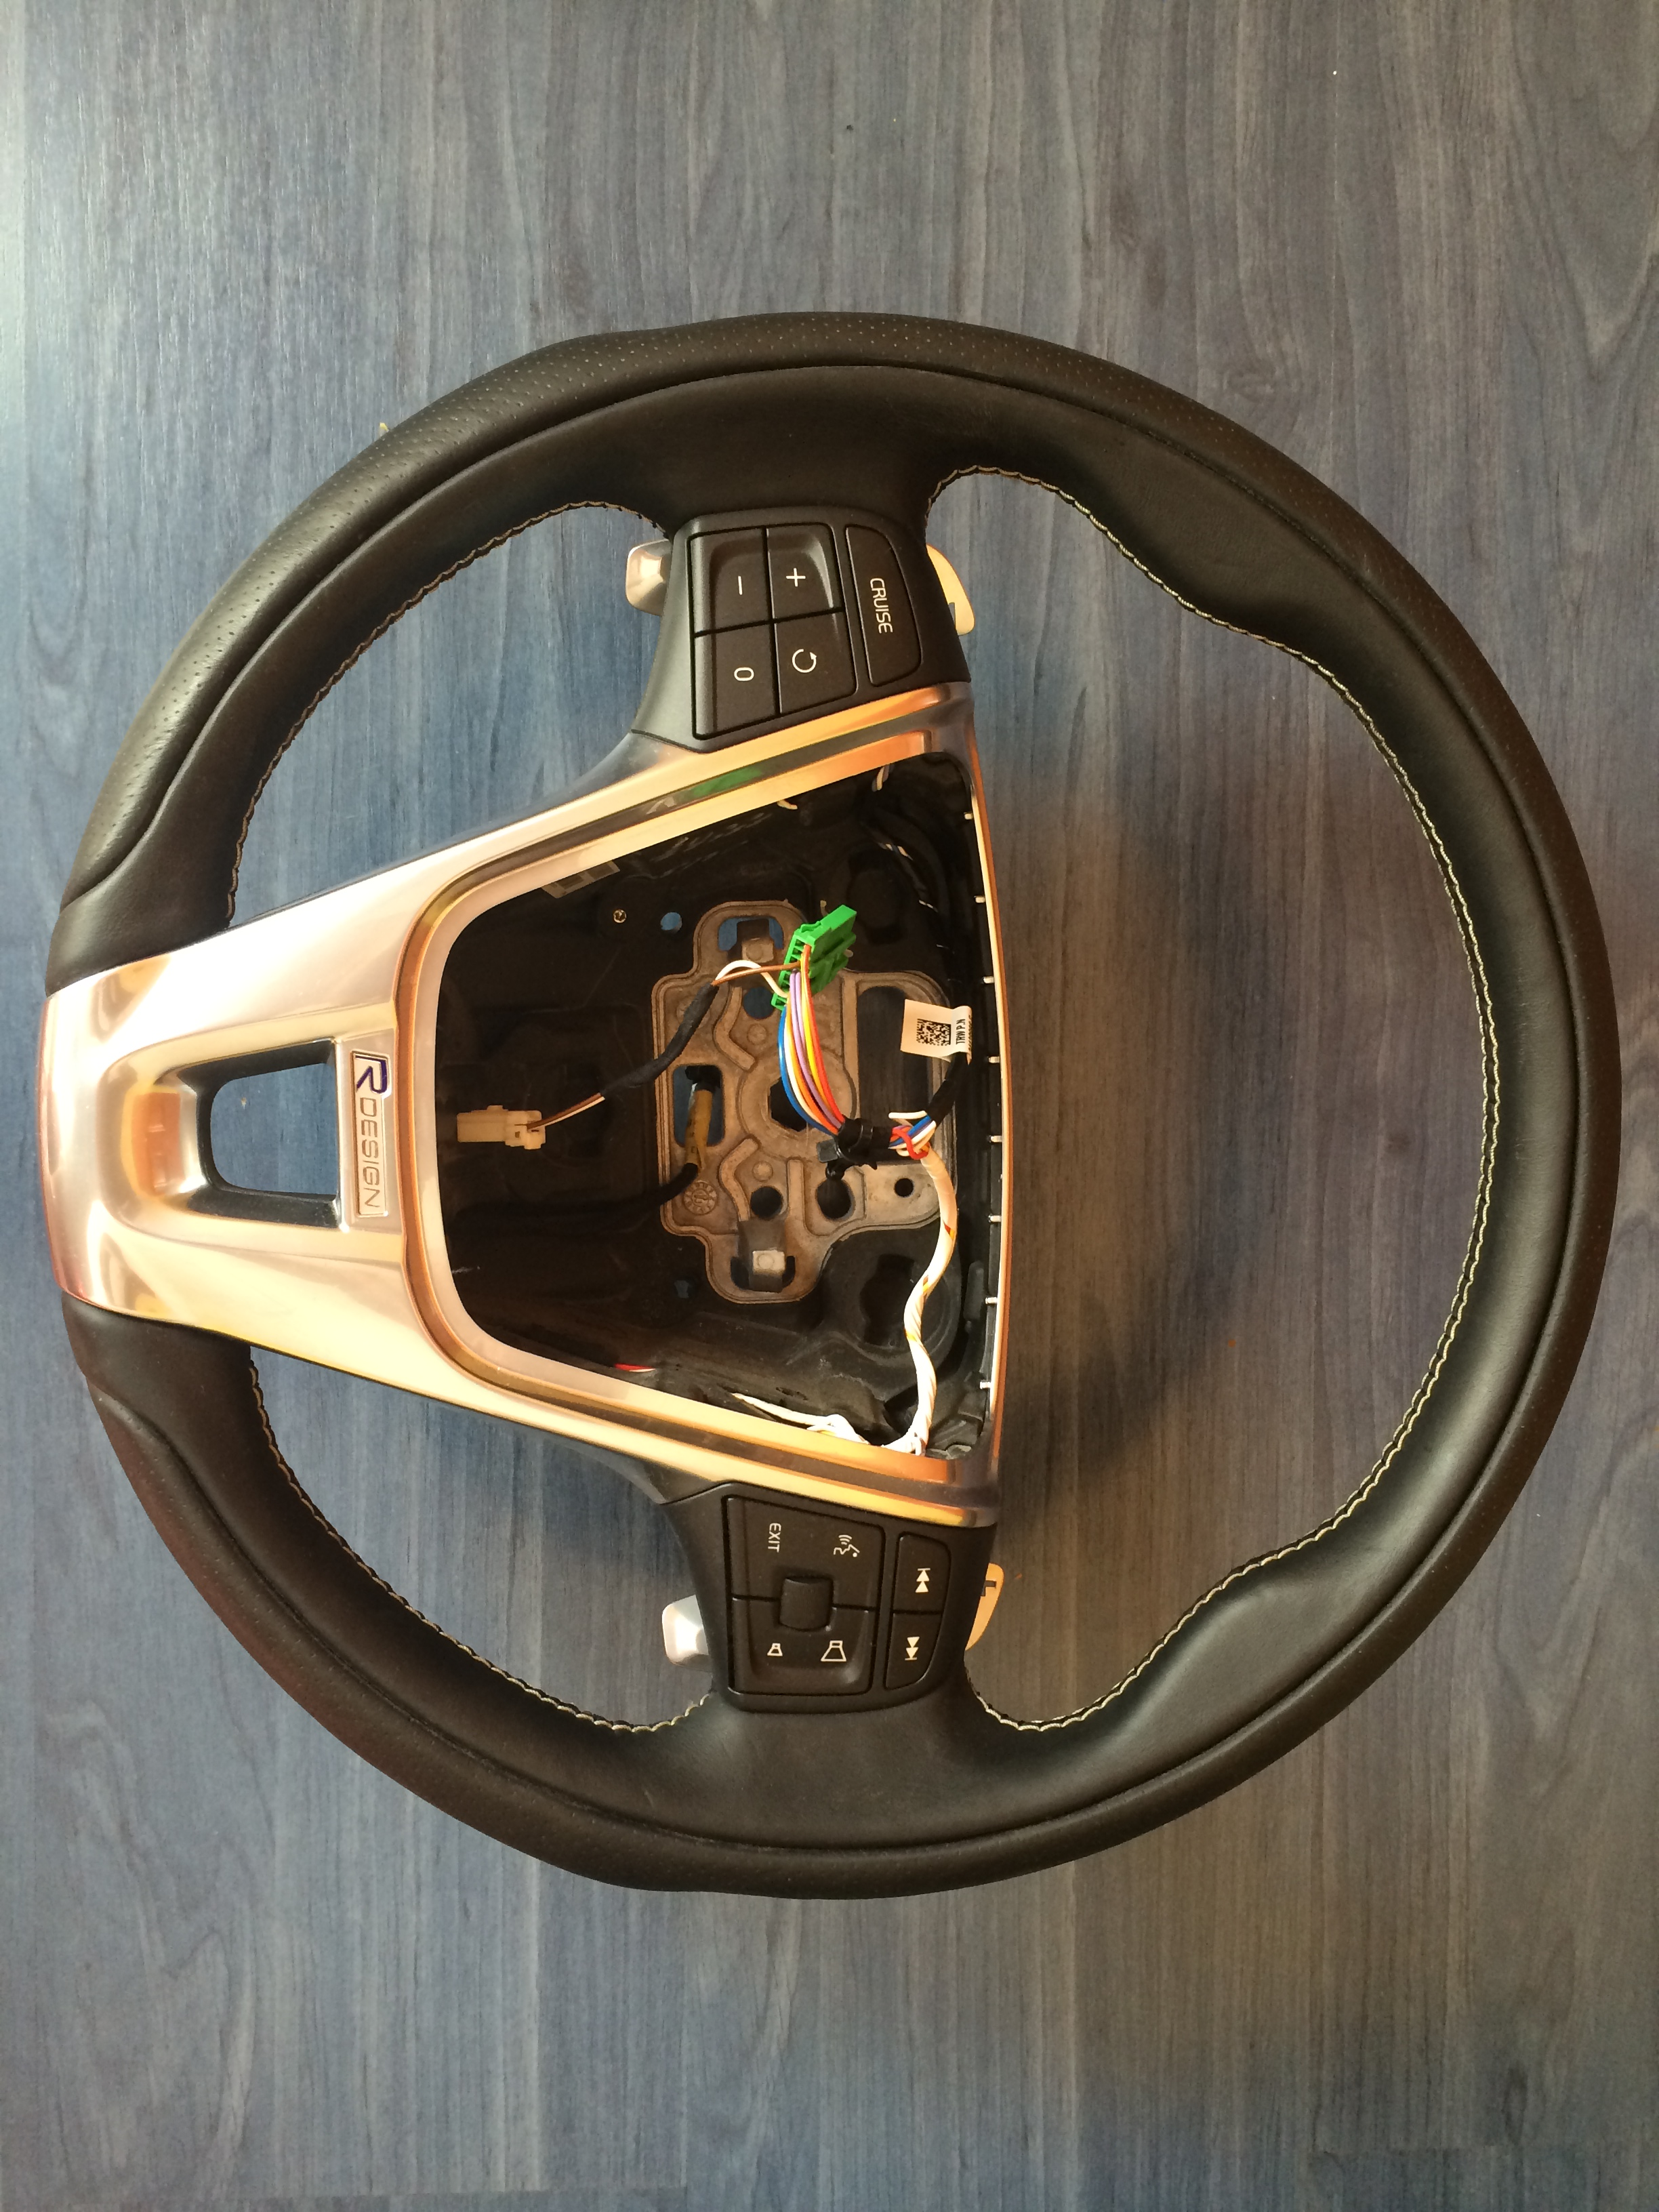 volvo s60 v60 xc60 steering wheel r design w/paddle shifters 12 13 14 15 | volvoproject.com